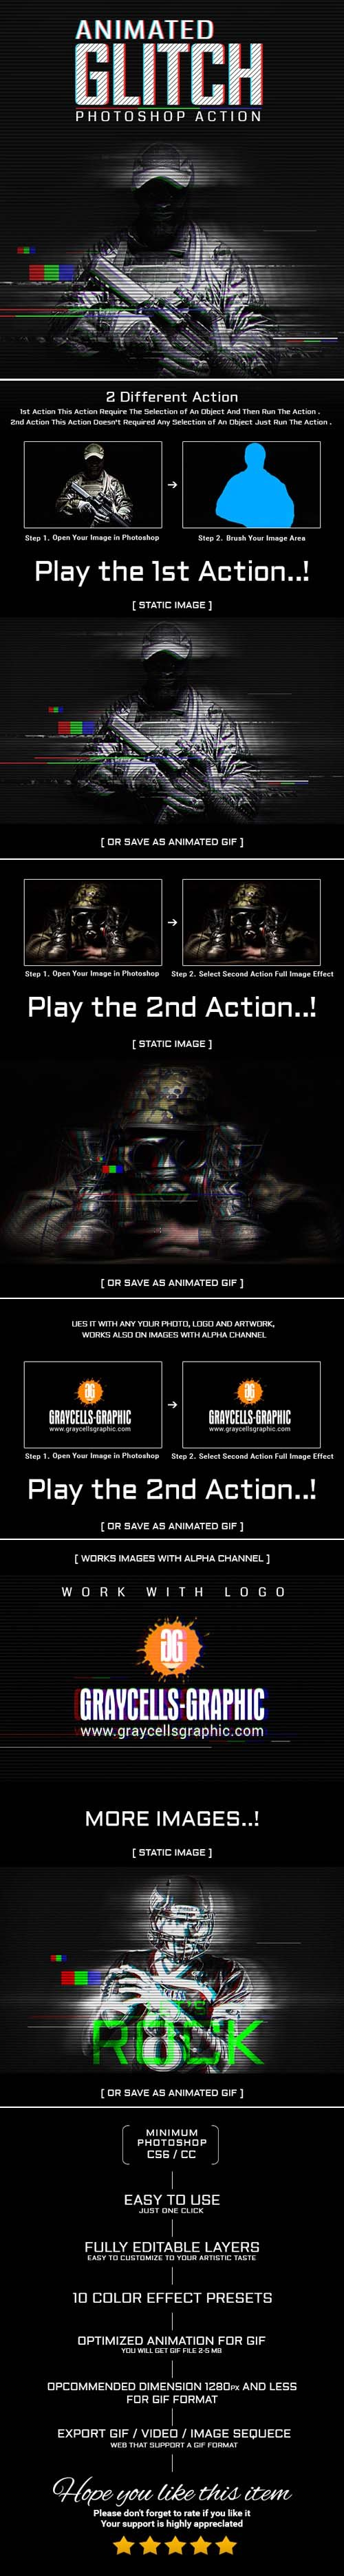 Graphicriver - Animation Glitch Photoshop Action 20187503